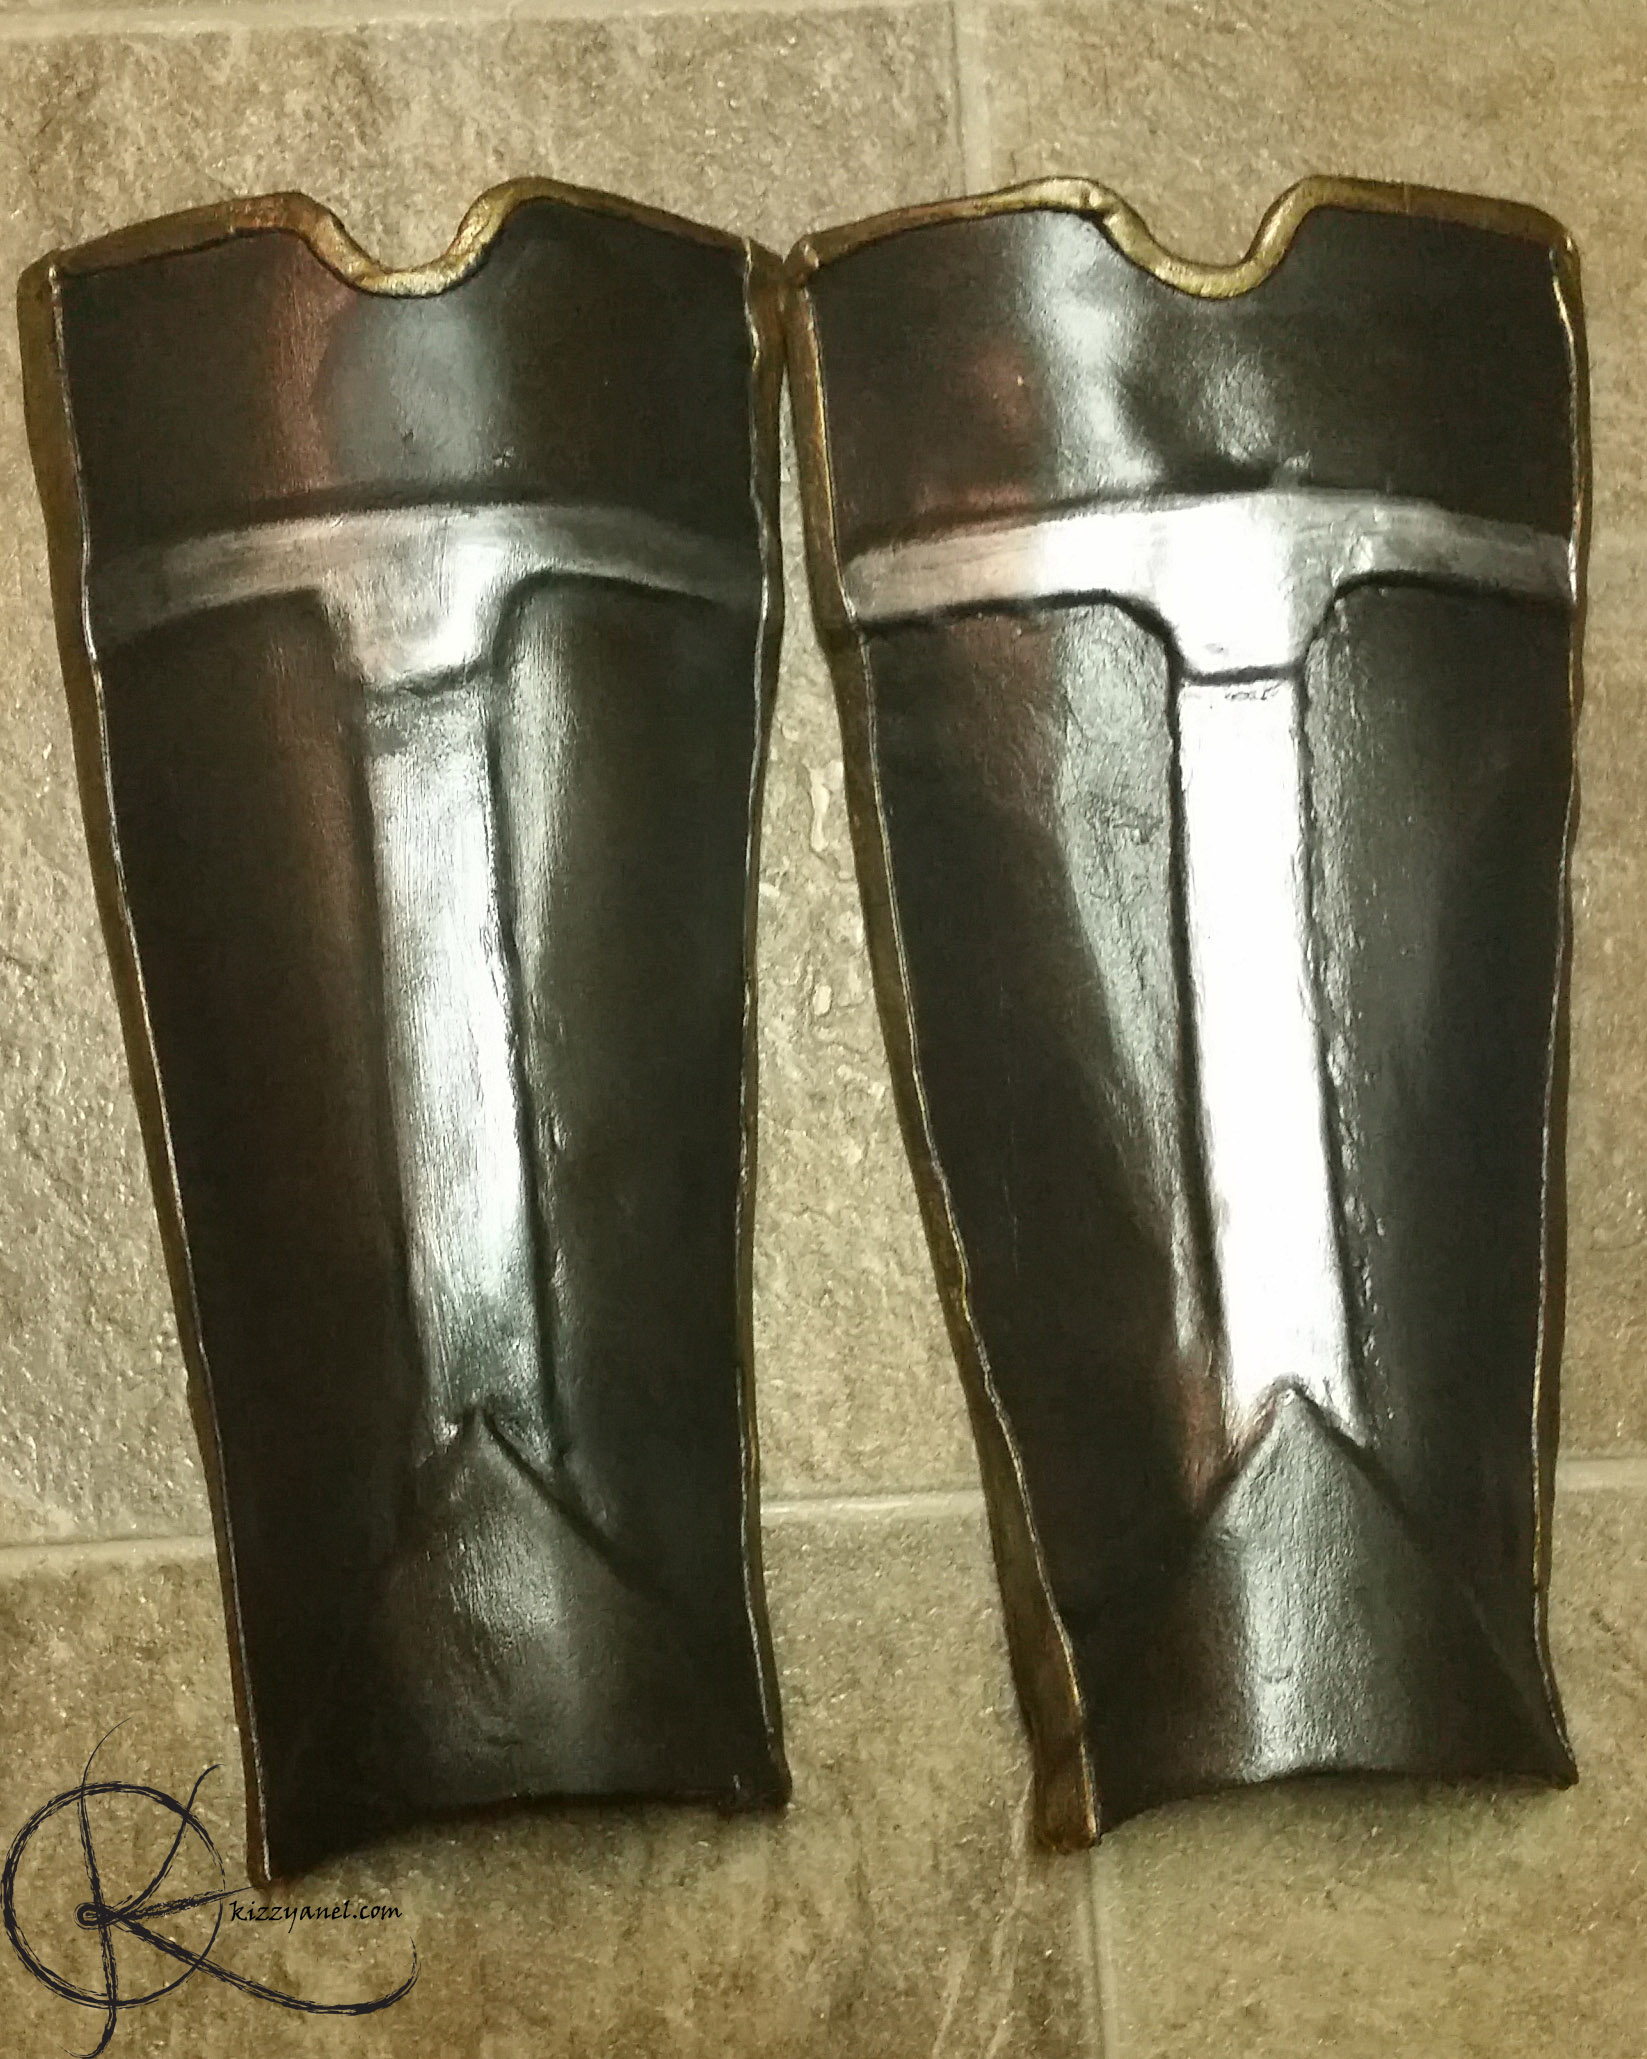 Shin guards weathered vs fresh paint